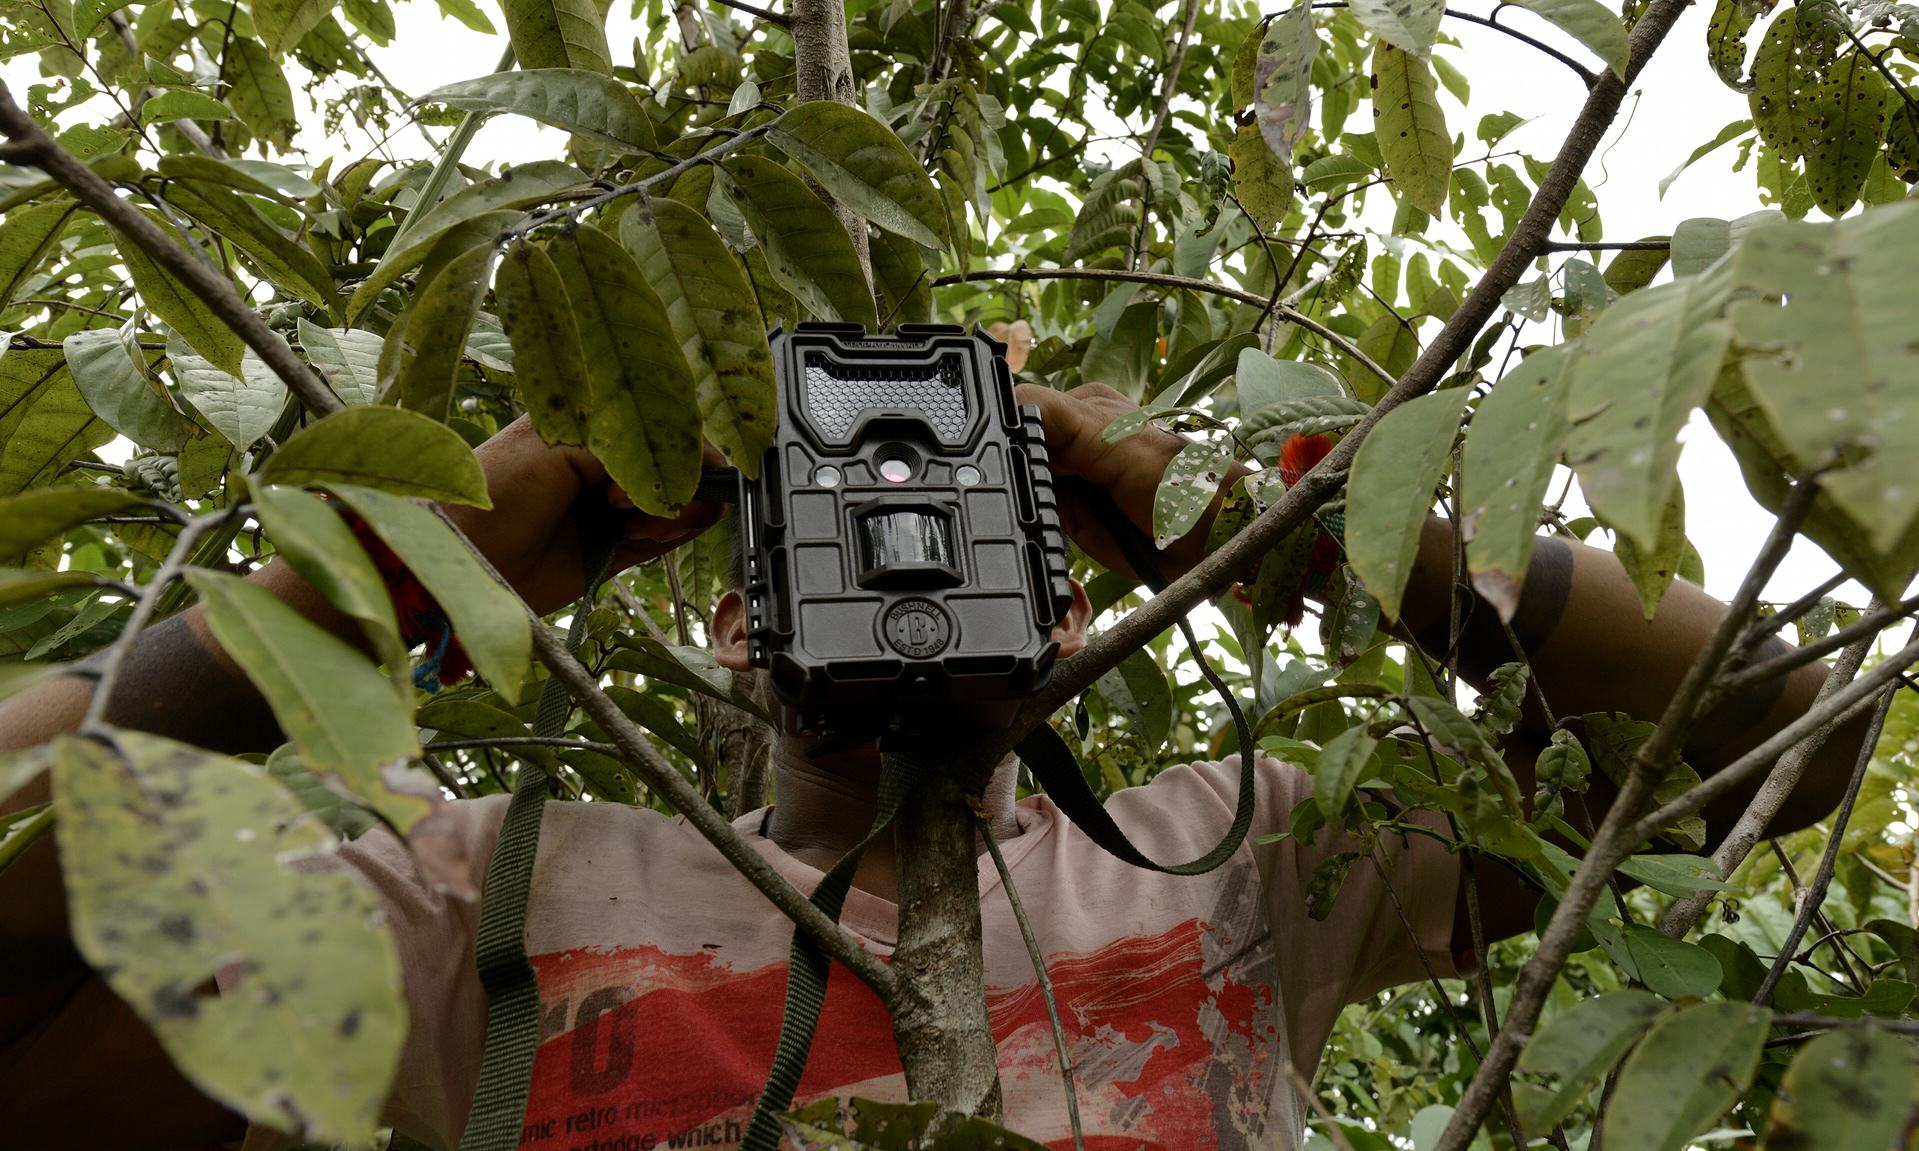 This Amazon Tribe Use Unusual Methods To Protect Their Land From Illegal Loggers UNILAD A Ka'apor Indian sets up a trap camera in an area used by illegal loggers. Photograph Lunae ParrachoGreenpeace2